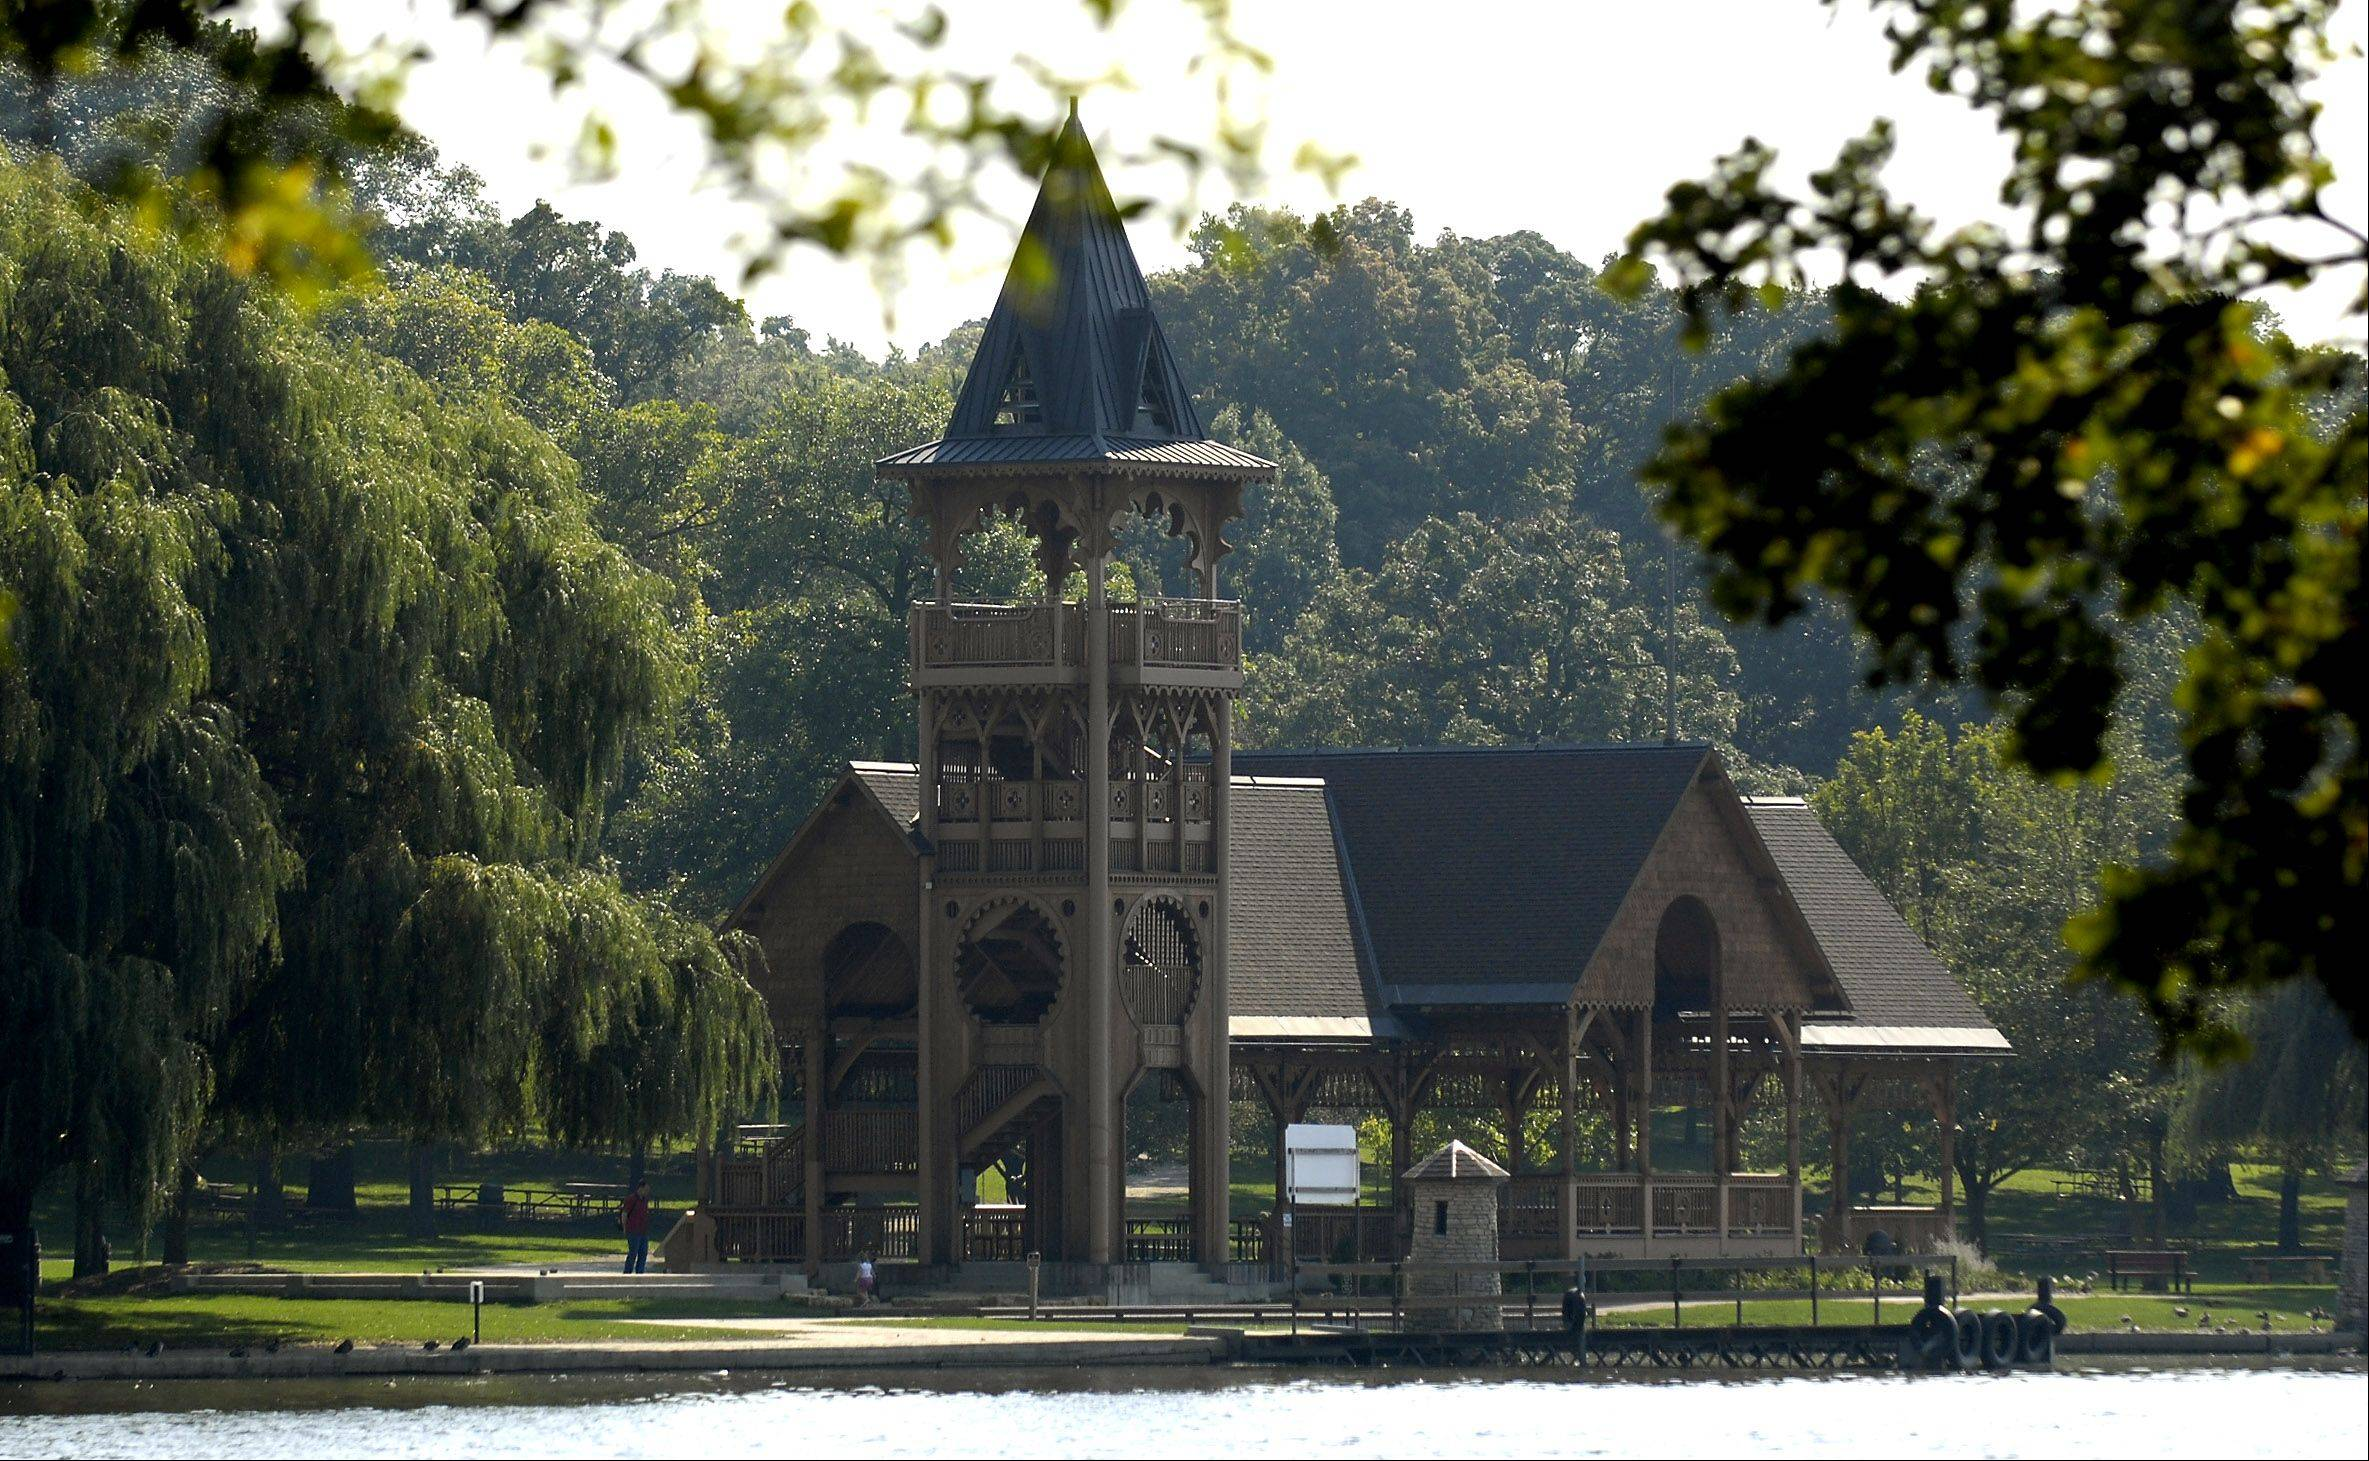 Pottawatomie Park is one of many attributes that helped make St. Charles the No. 1 city for families according to Family Circle magazine.